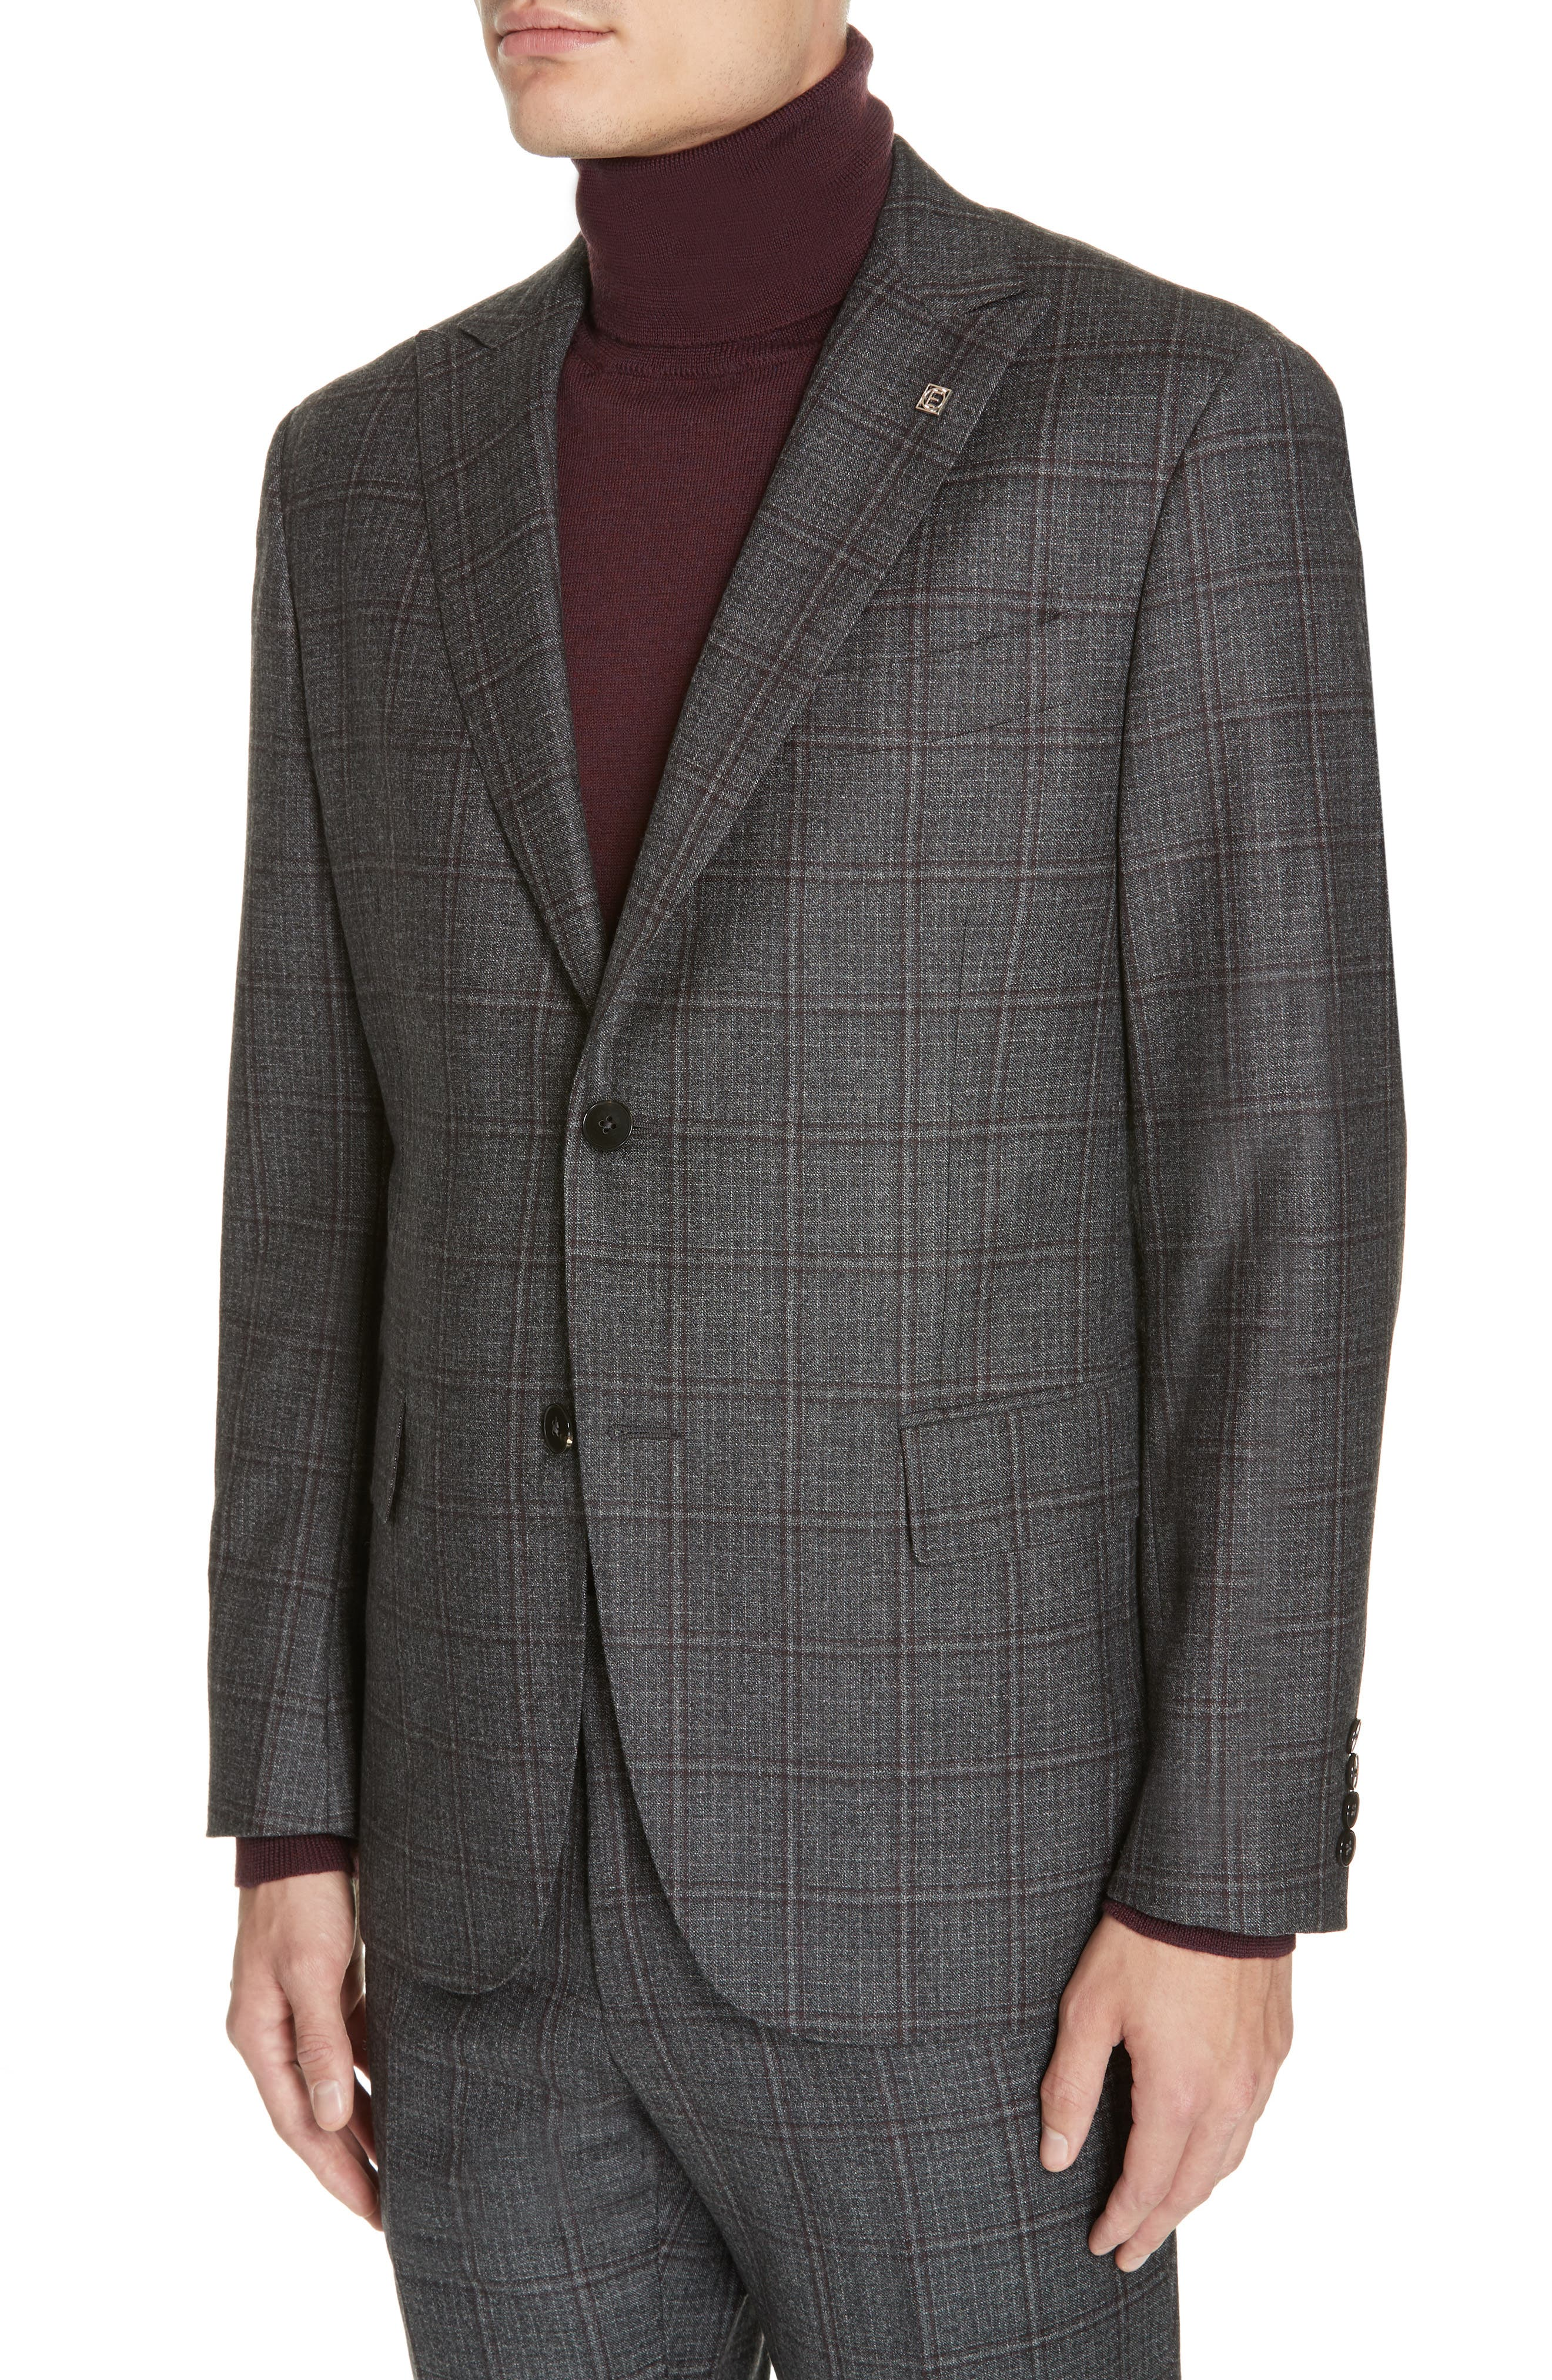 Trim Fit Plaid Wool Suit,                             Alternate thumbnail 4, color,                             GREY/ BURGUNDY